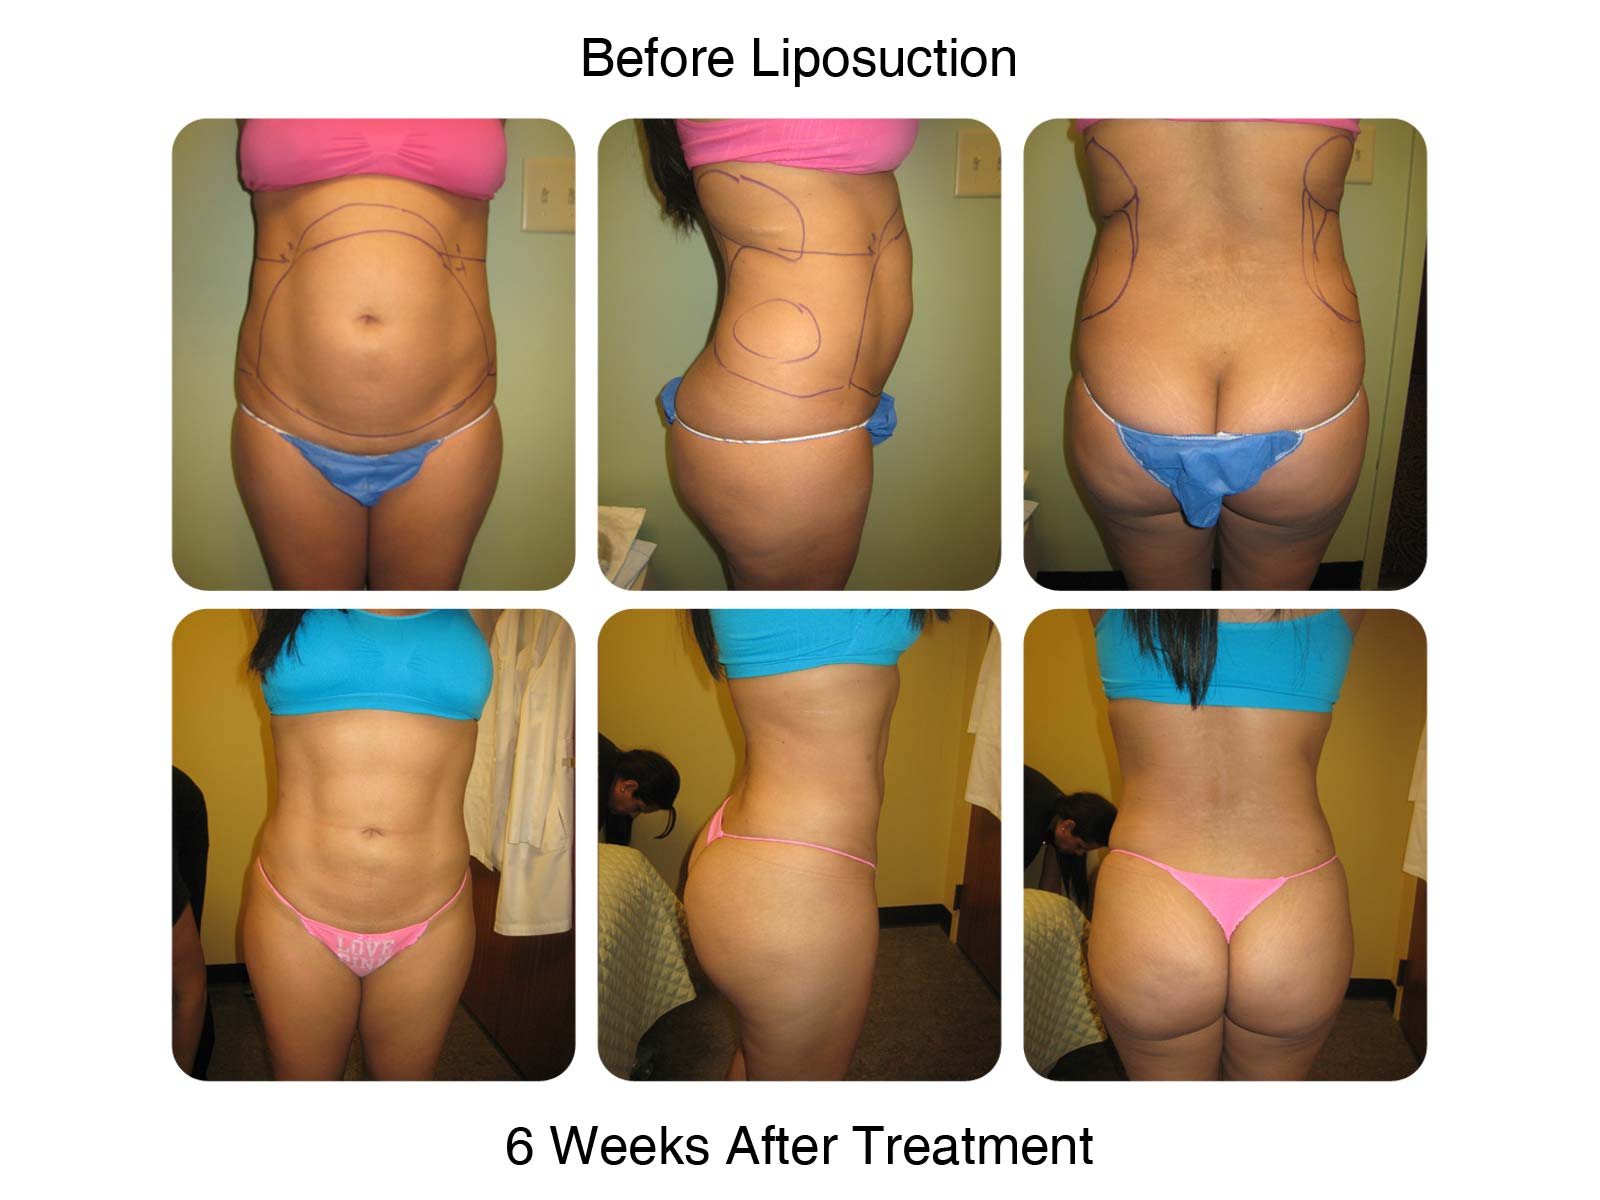 6 Weeks After - Lipo Results